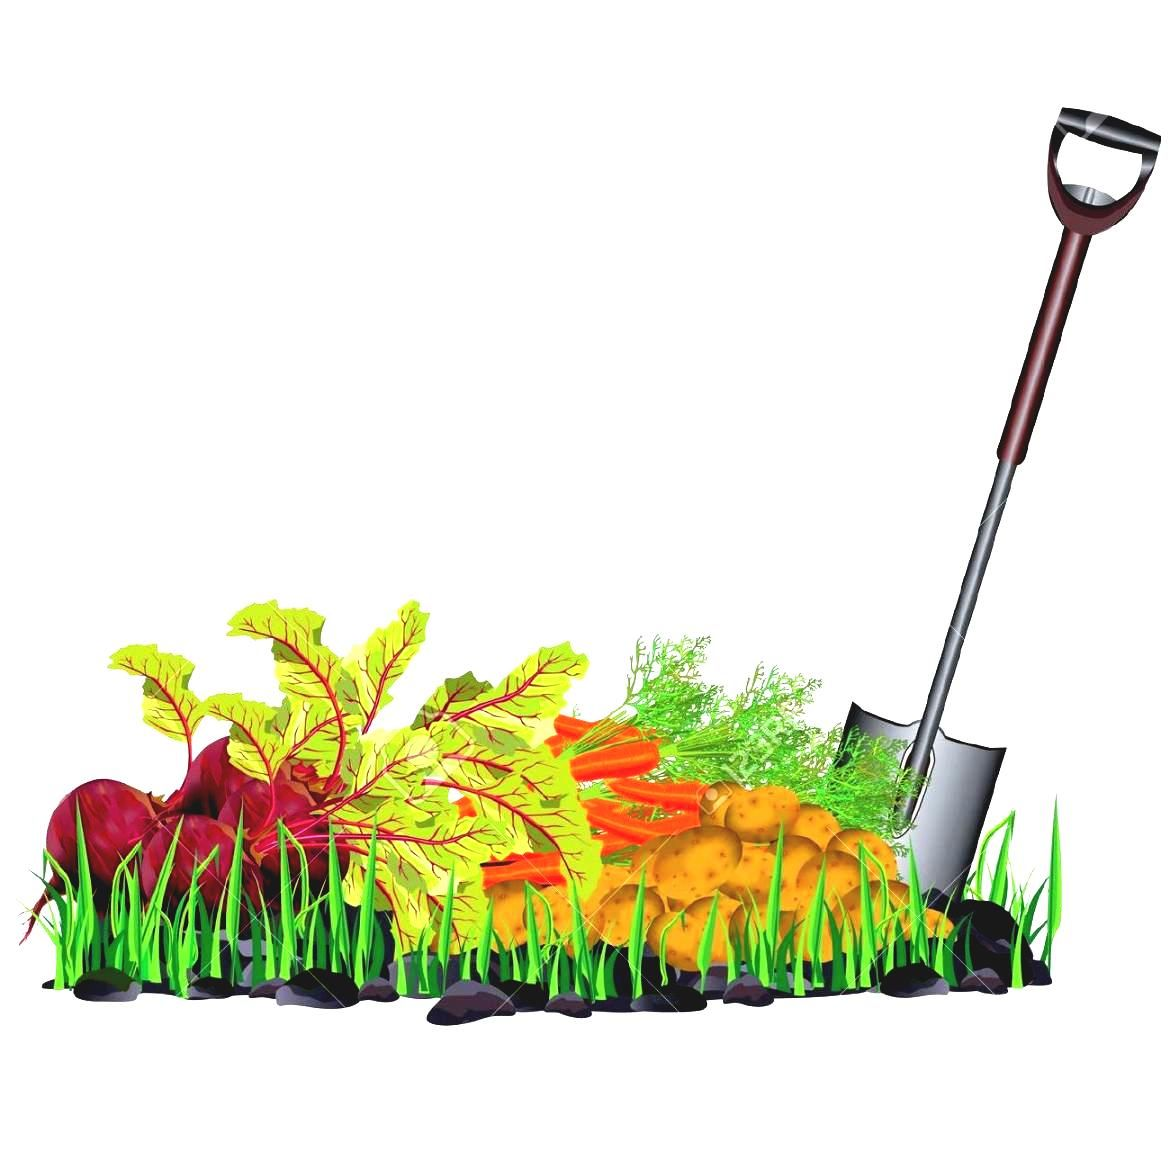 Background clipart vegetable garden #7